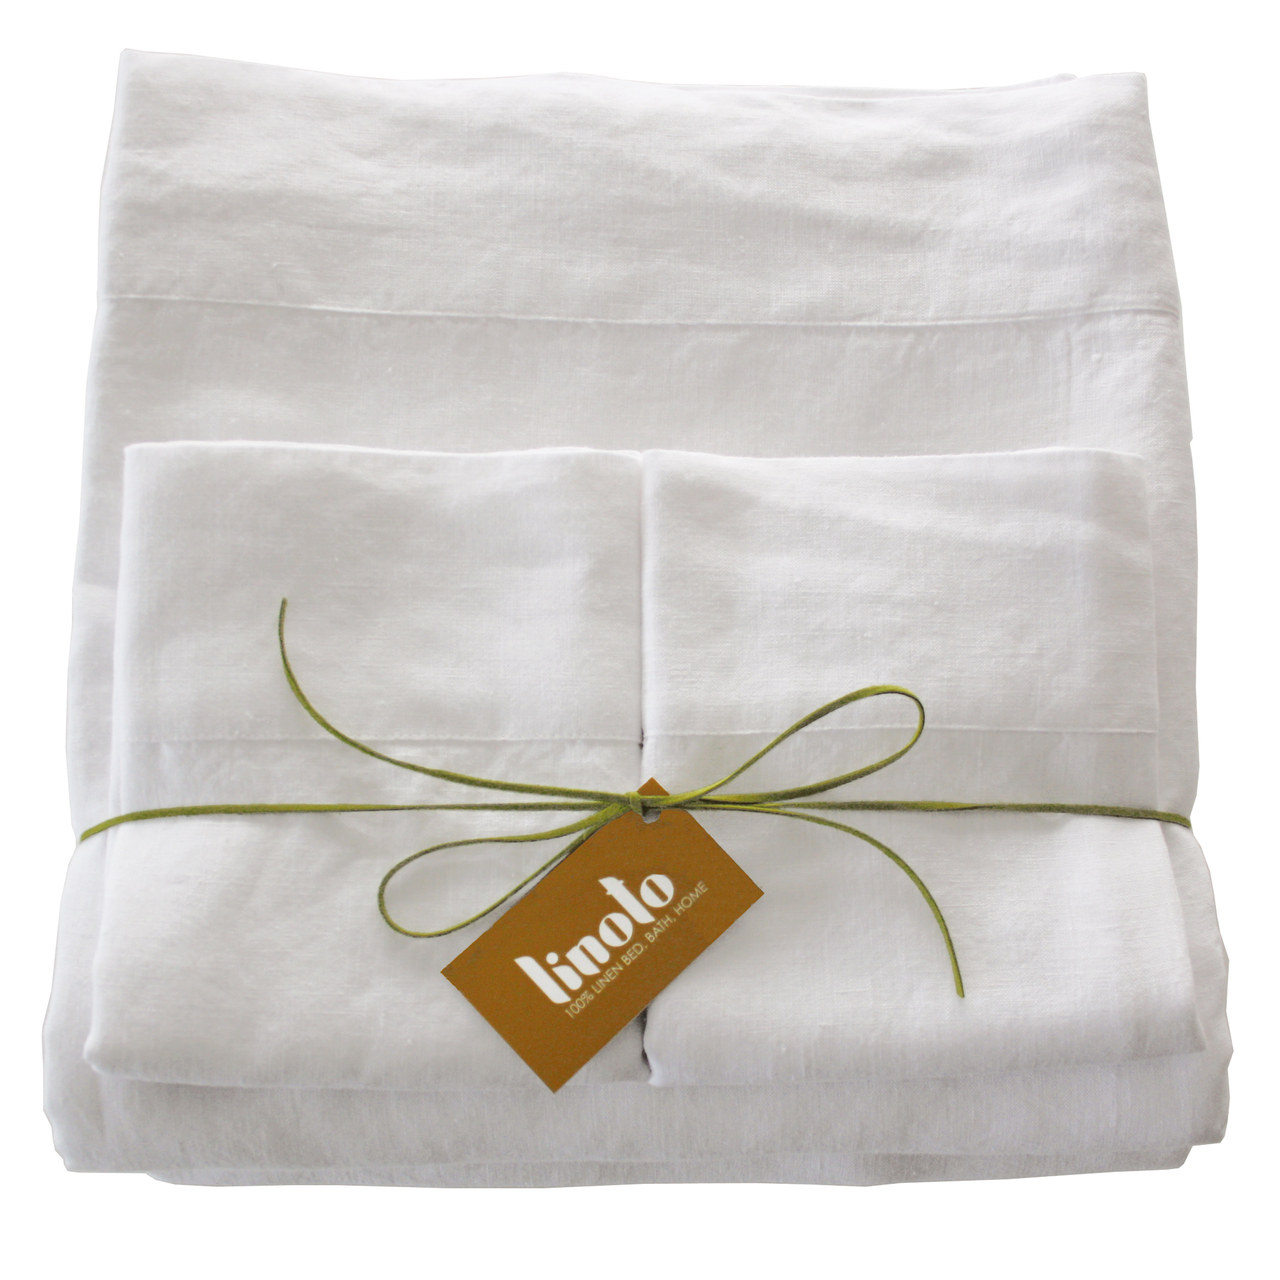 Belgian eco-linen sheet set